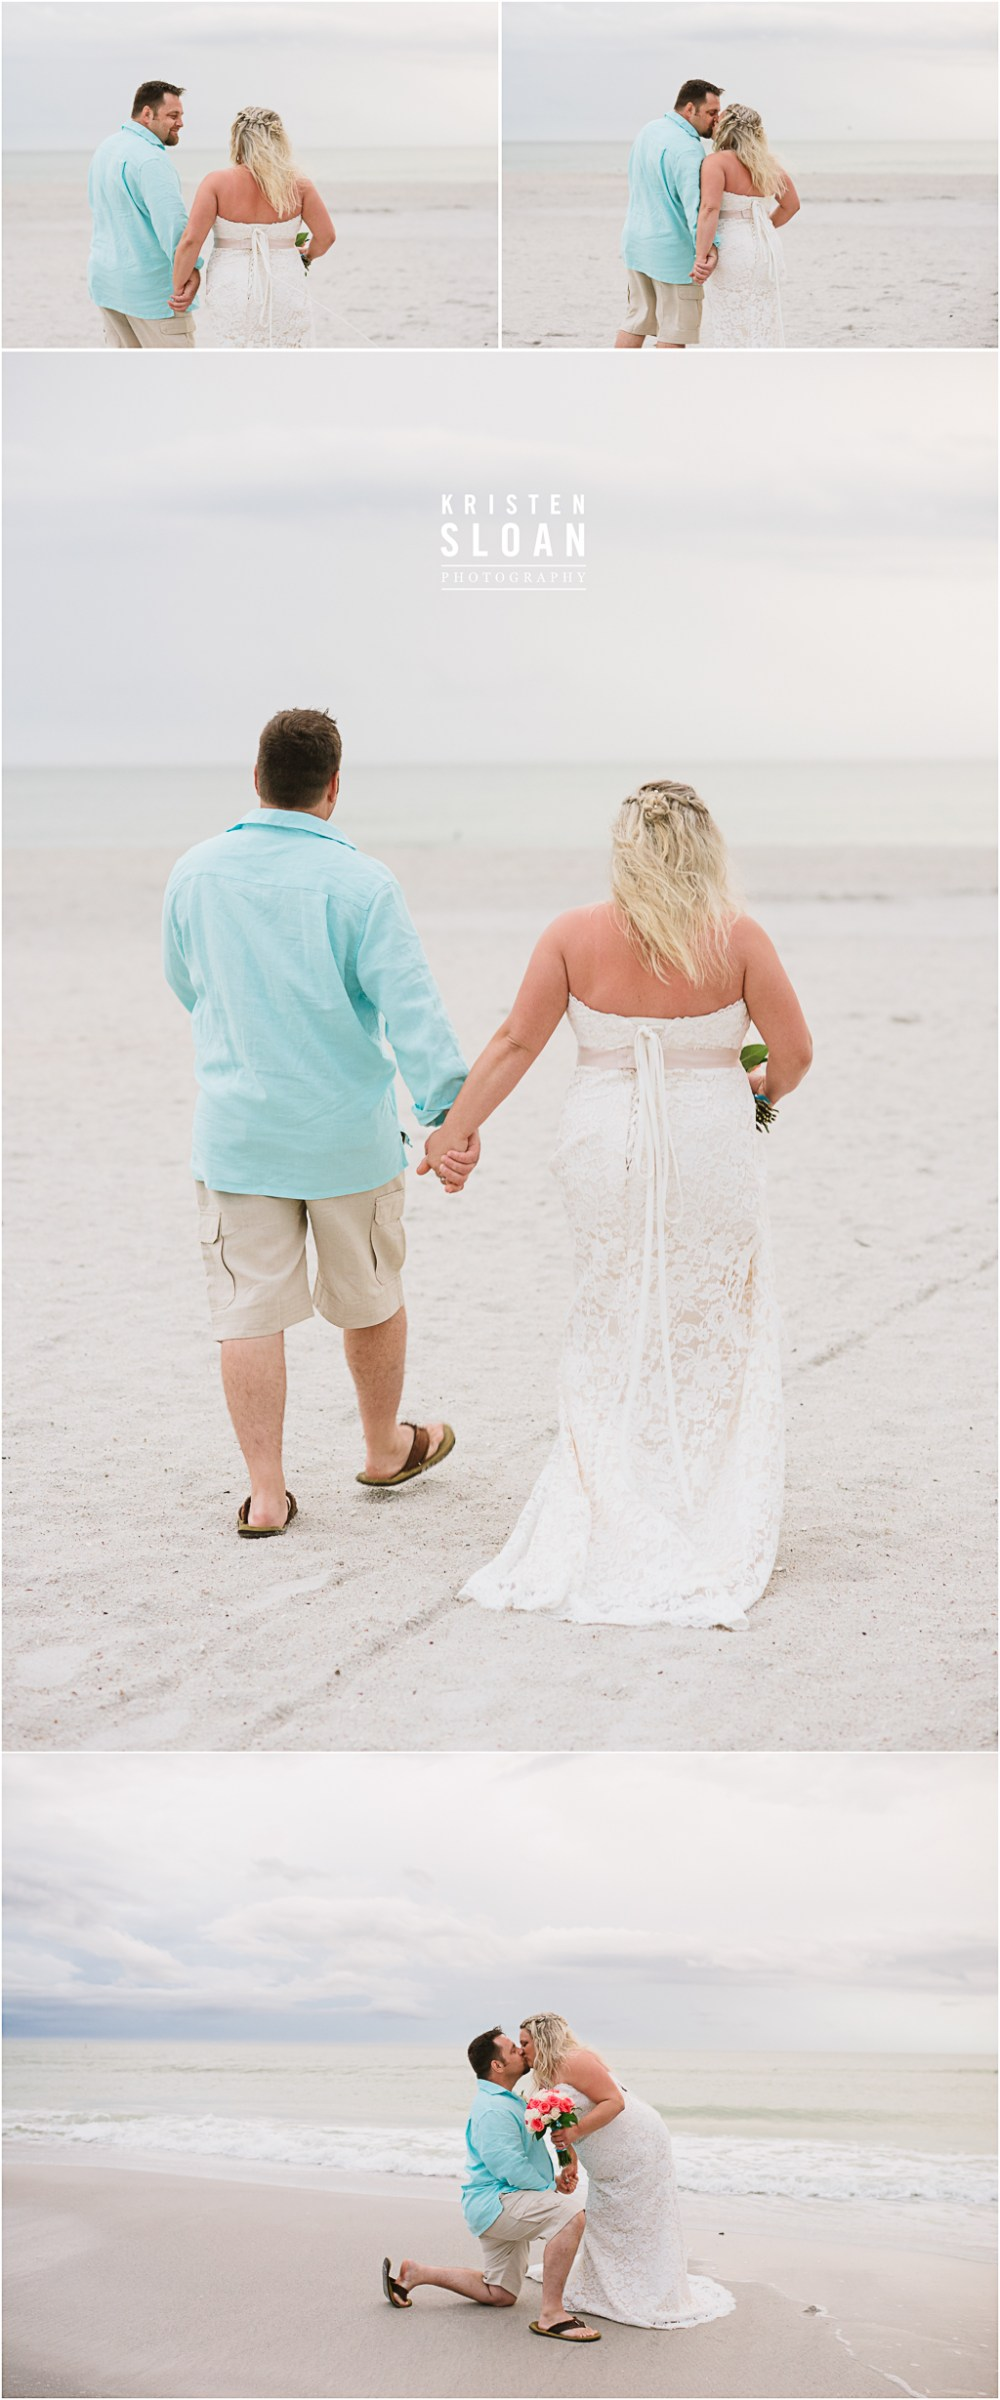 Sunset Vistas Beachfront Suites Treasure Island Florida Wedding, Treasure Island Florida Wedding Photographer, St Pete Beach Florida Wedding Photographer Kristen Sloan, Florida Beach Wedding